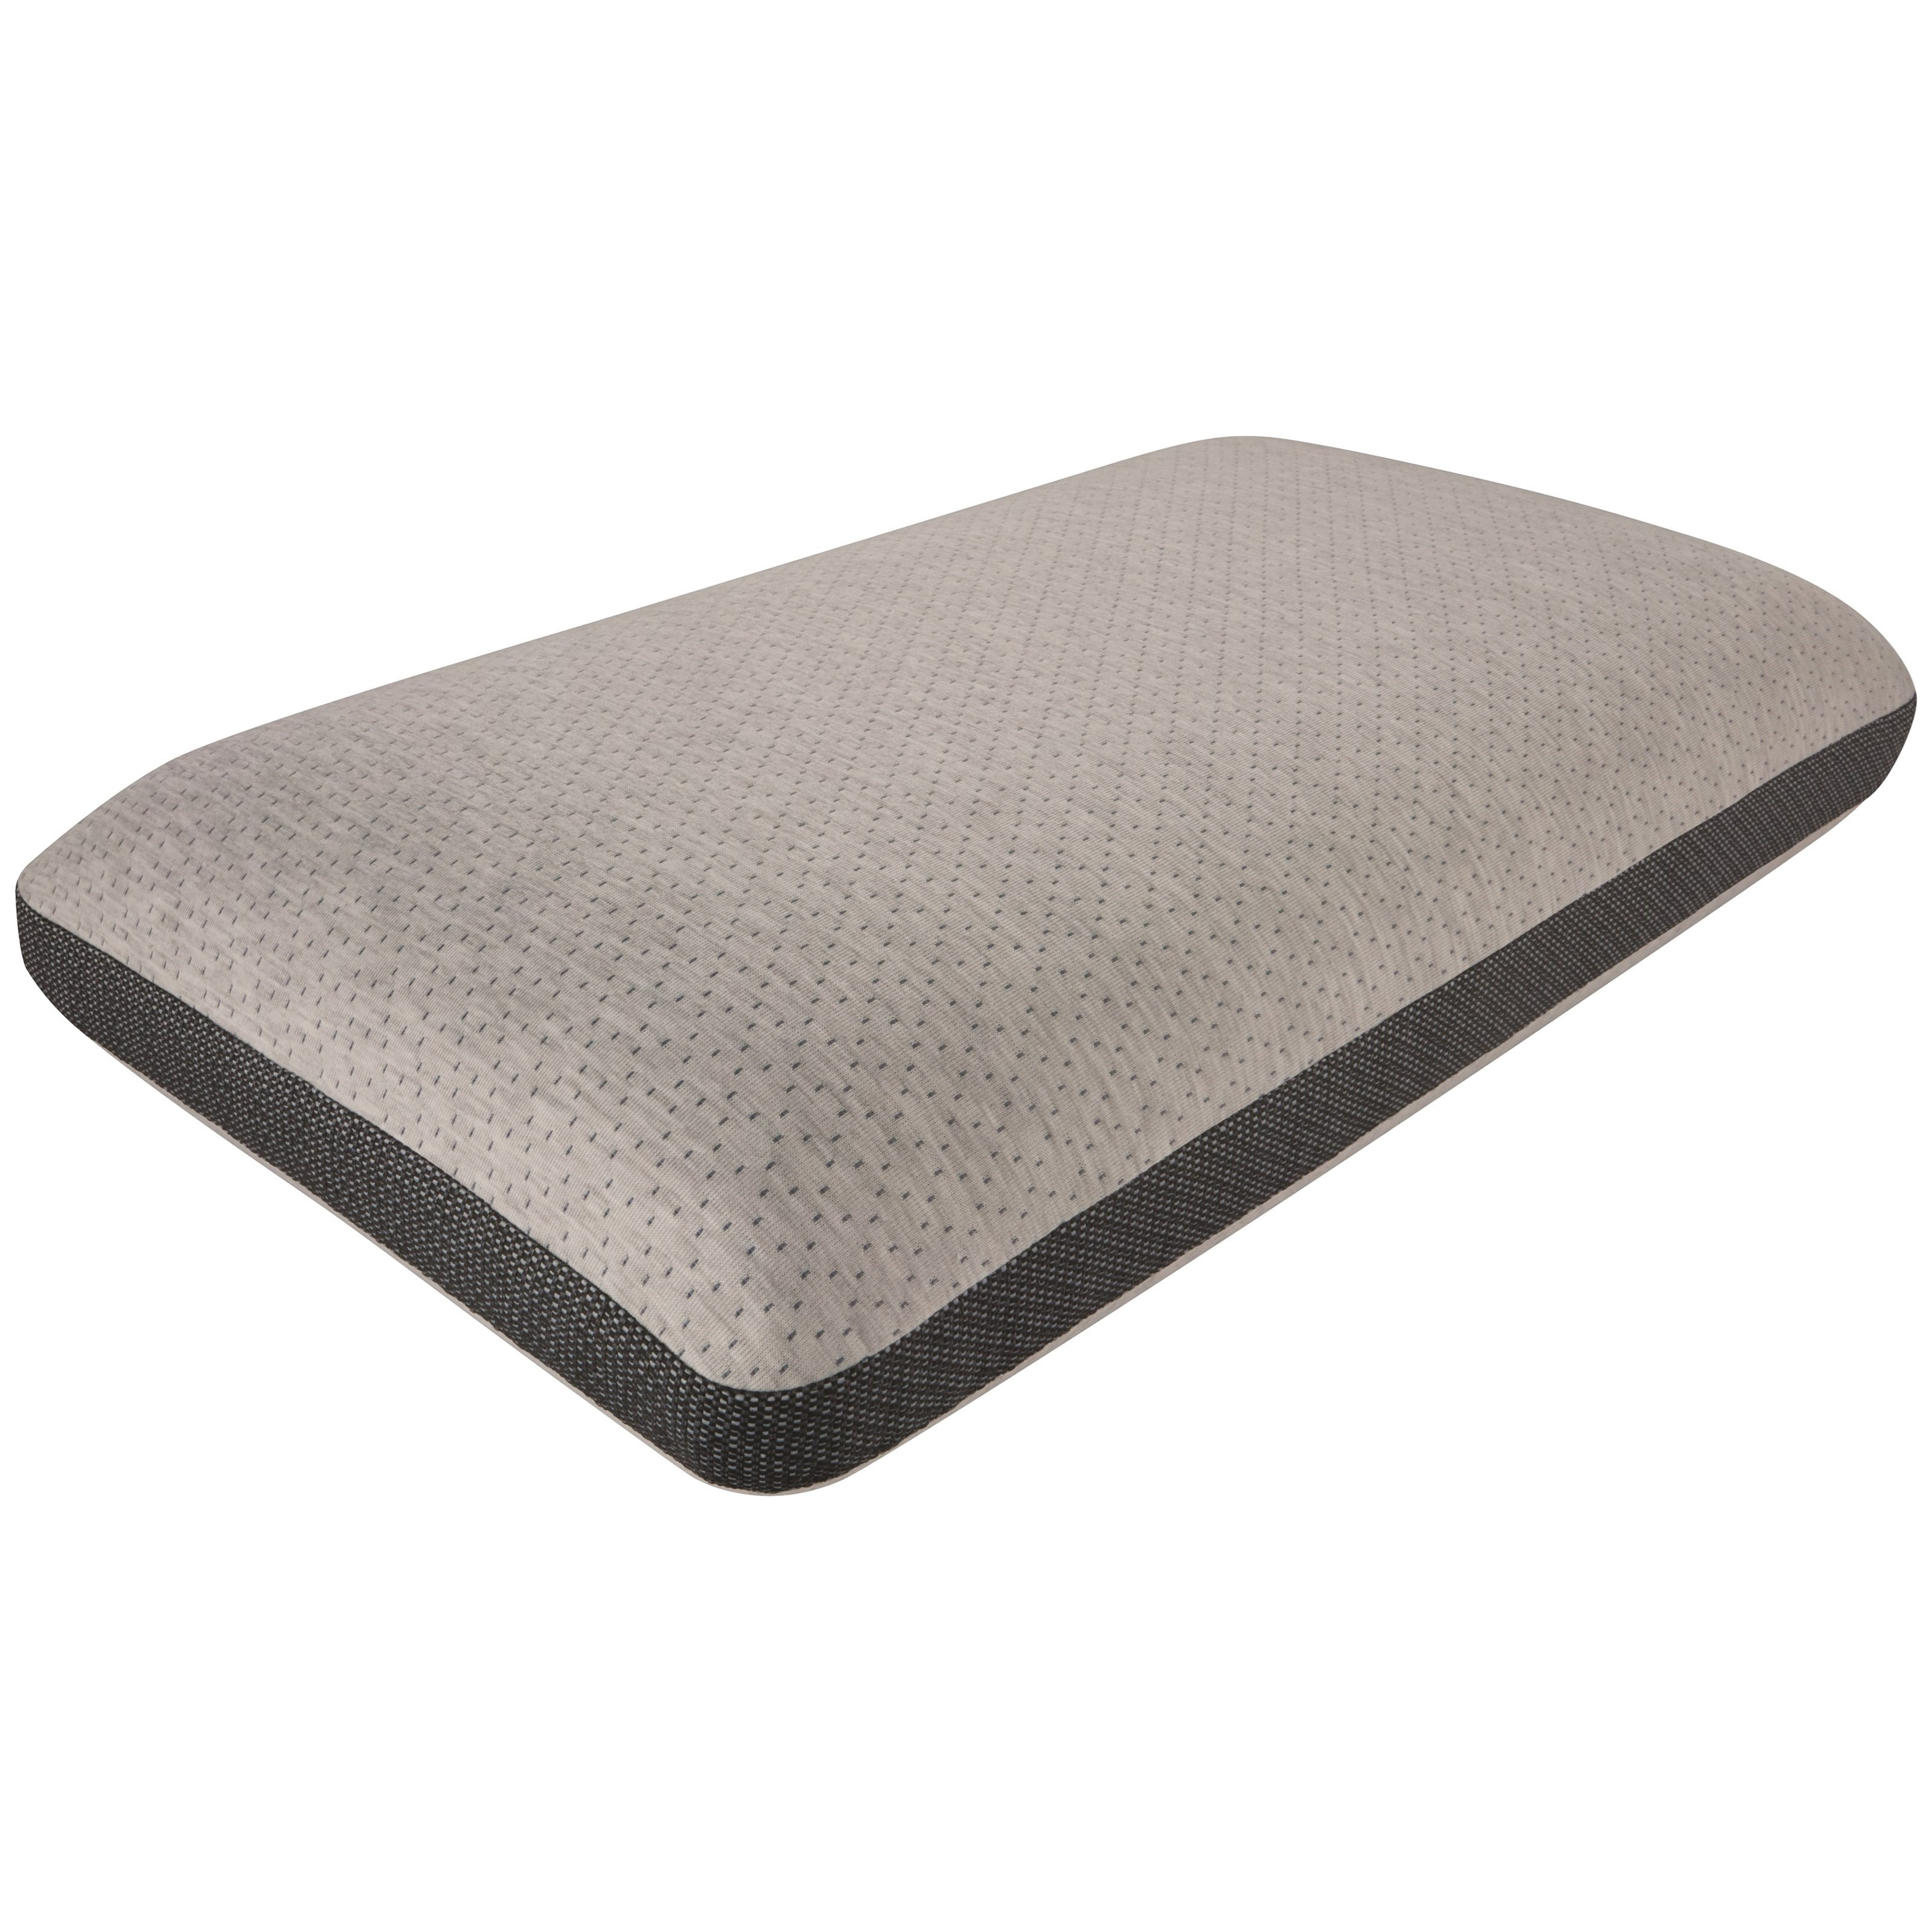 """Absolute Beauty Pillow 6"""" Profile All Position Memory Foam Pillow by Beautyrest at Becker Furniture"""